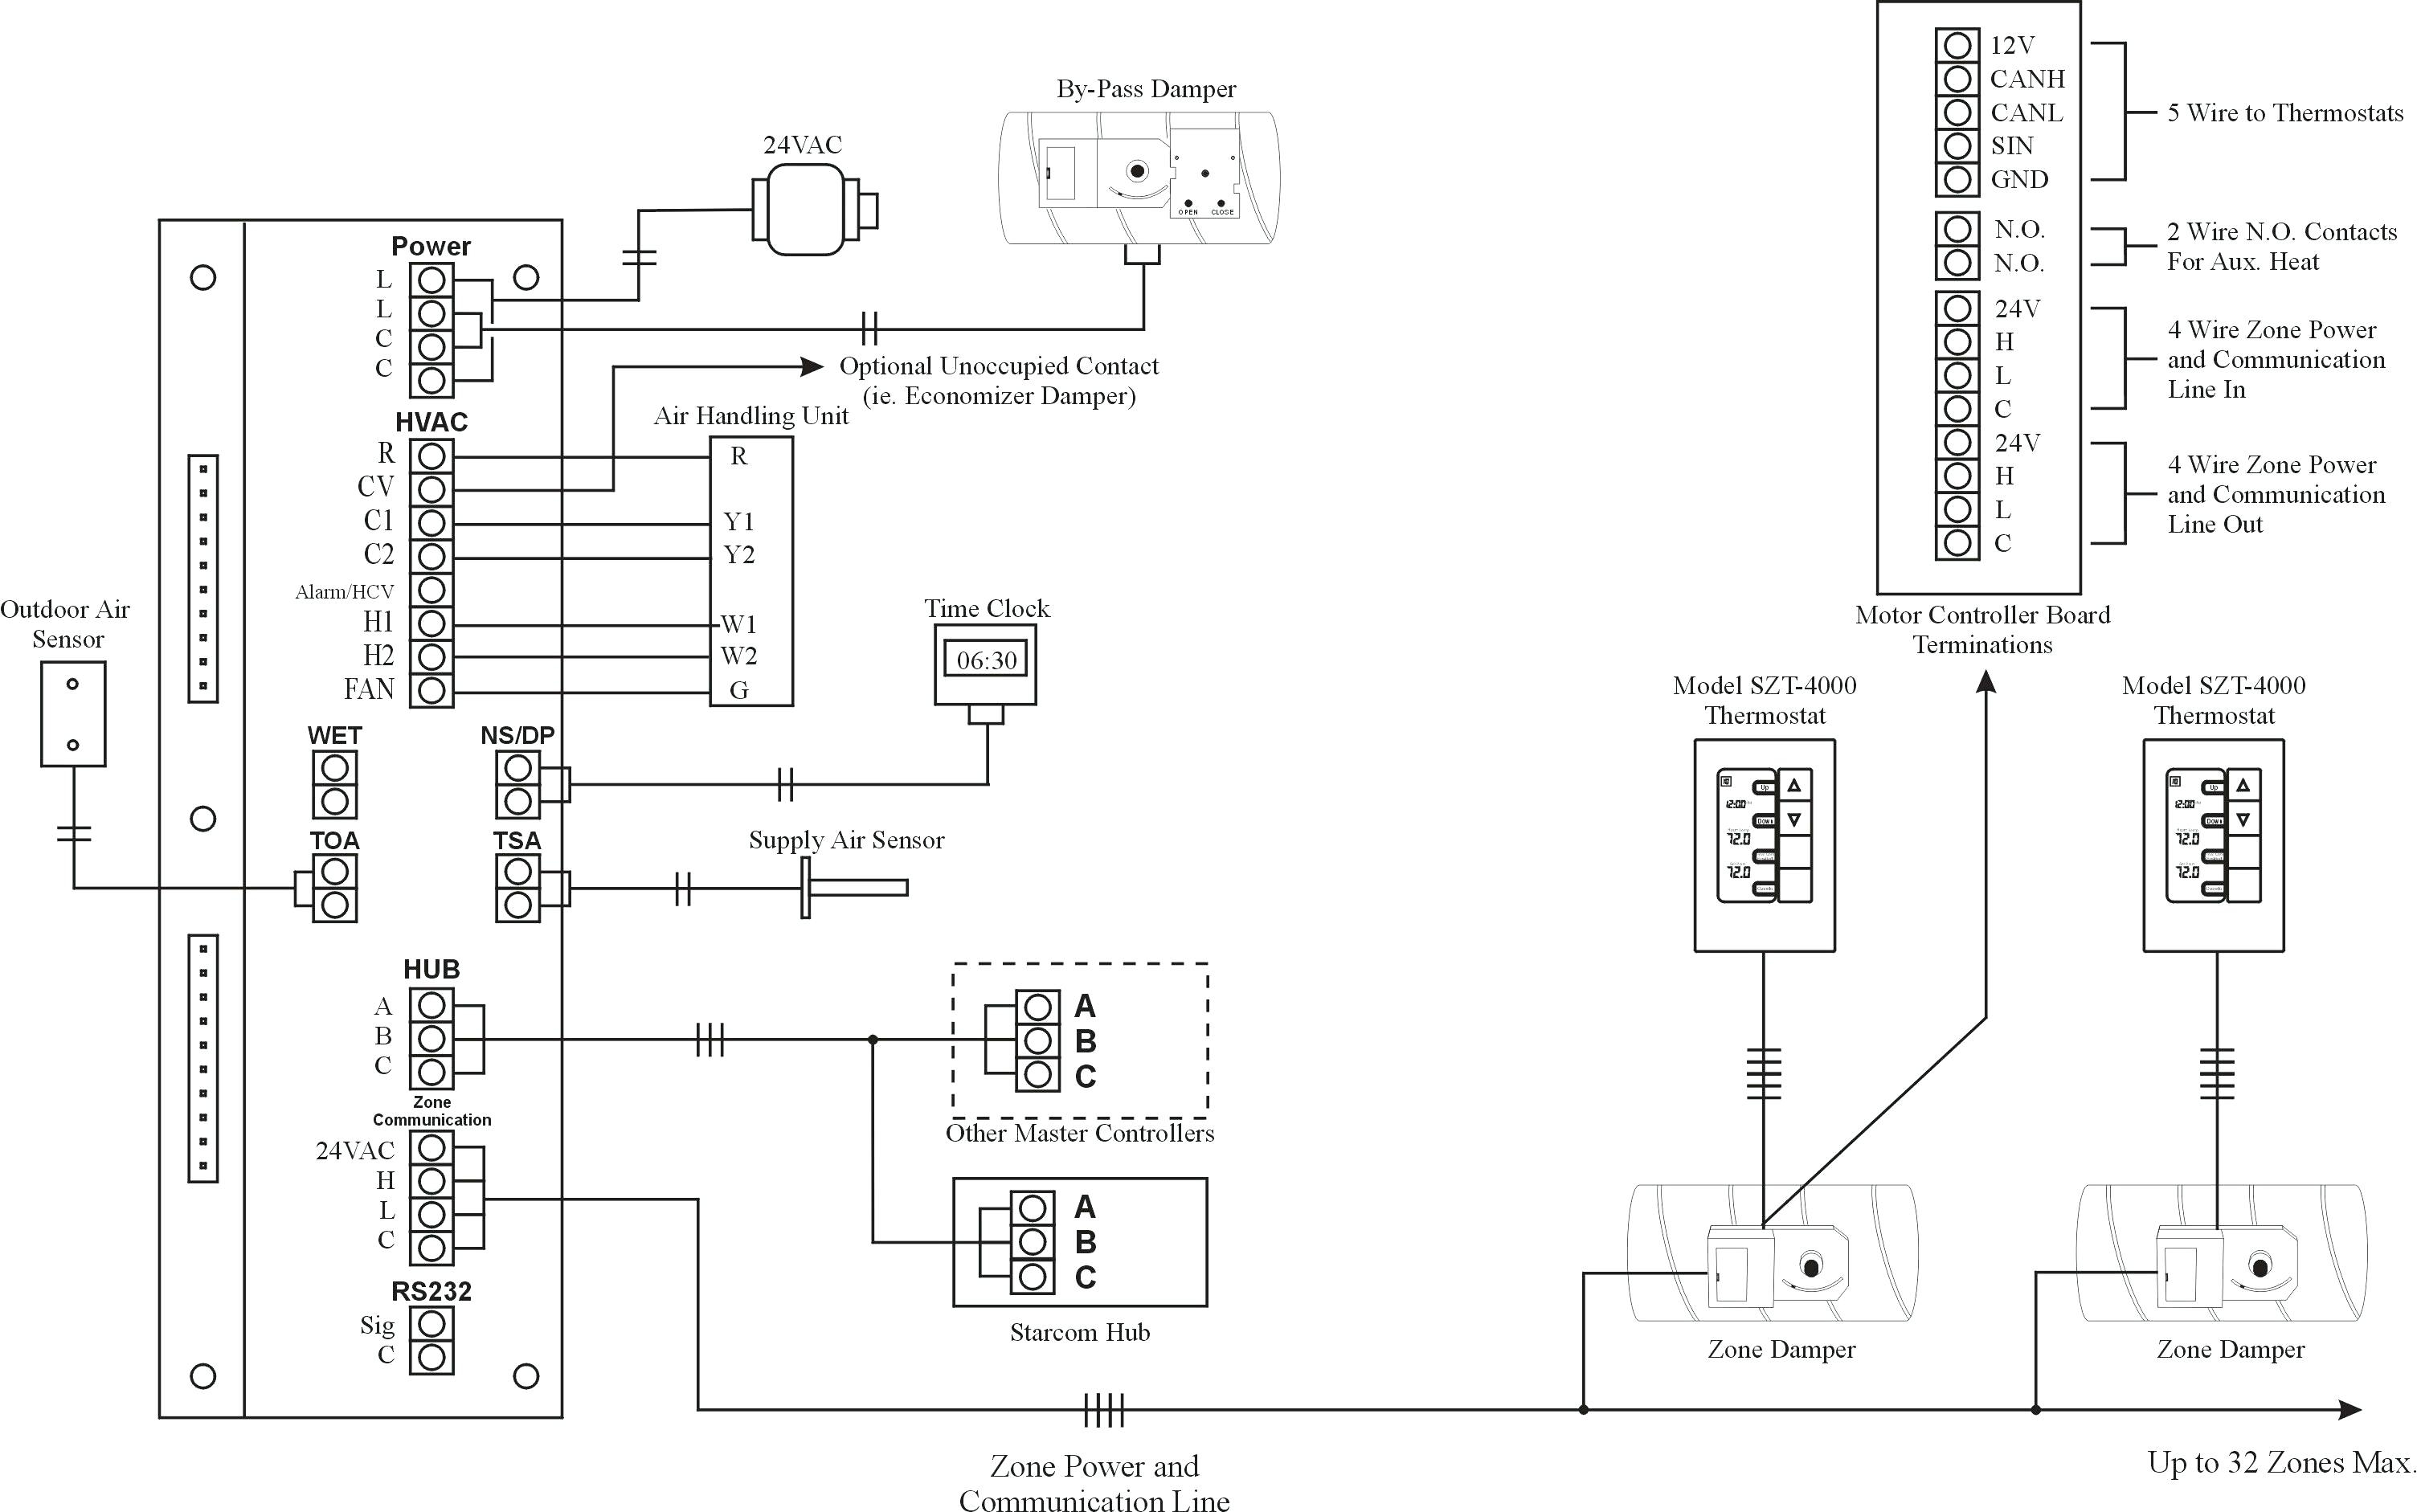 fire alarm wiring diagram schematic Download-Cobra Alarm Wiring Diagram Download Fresh Wiring Diagram For Fire Alarm System And New Mando Car Free Cobra Alarm Wiring Diagram Download In Fire Alarm 15-d